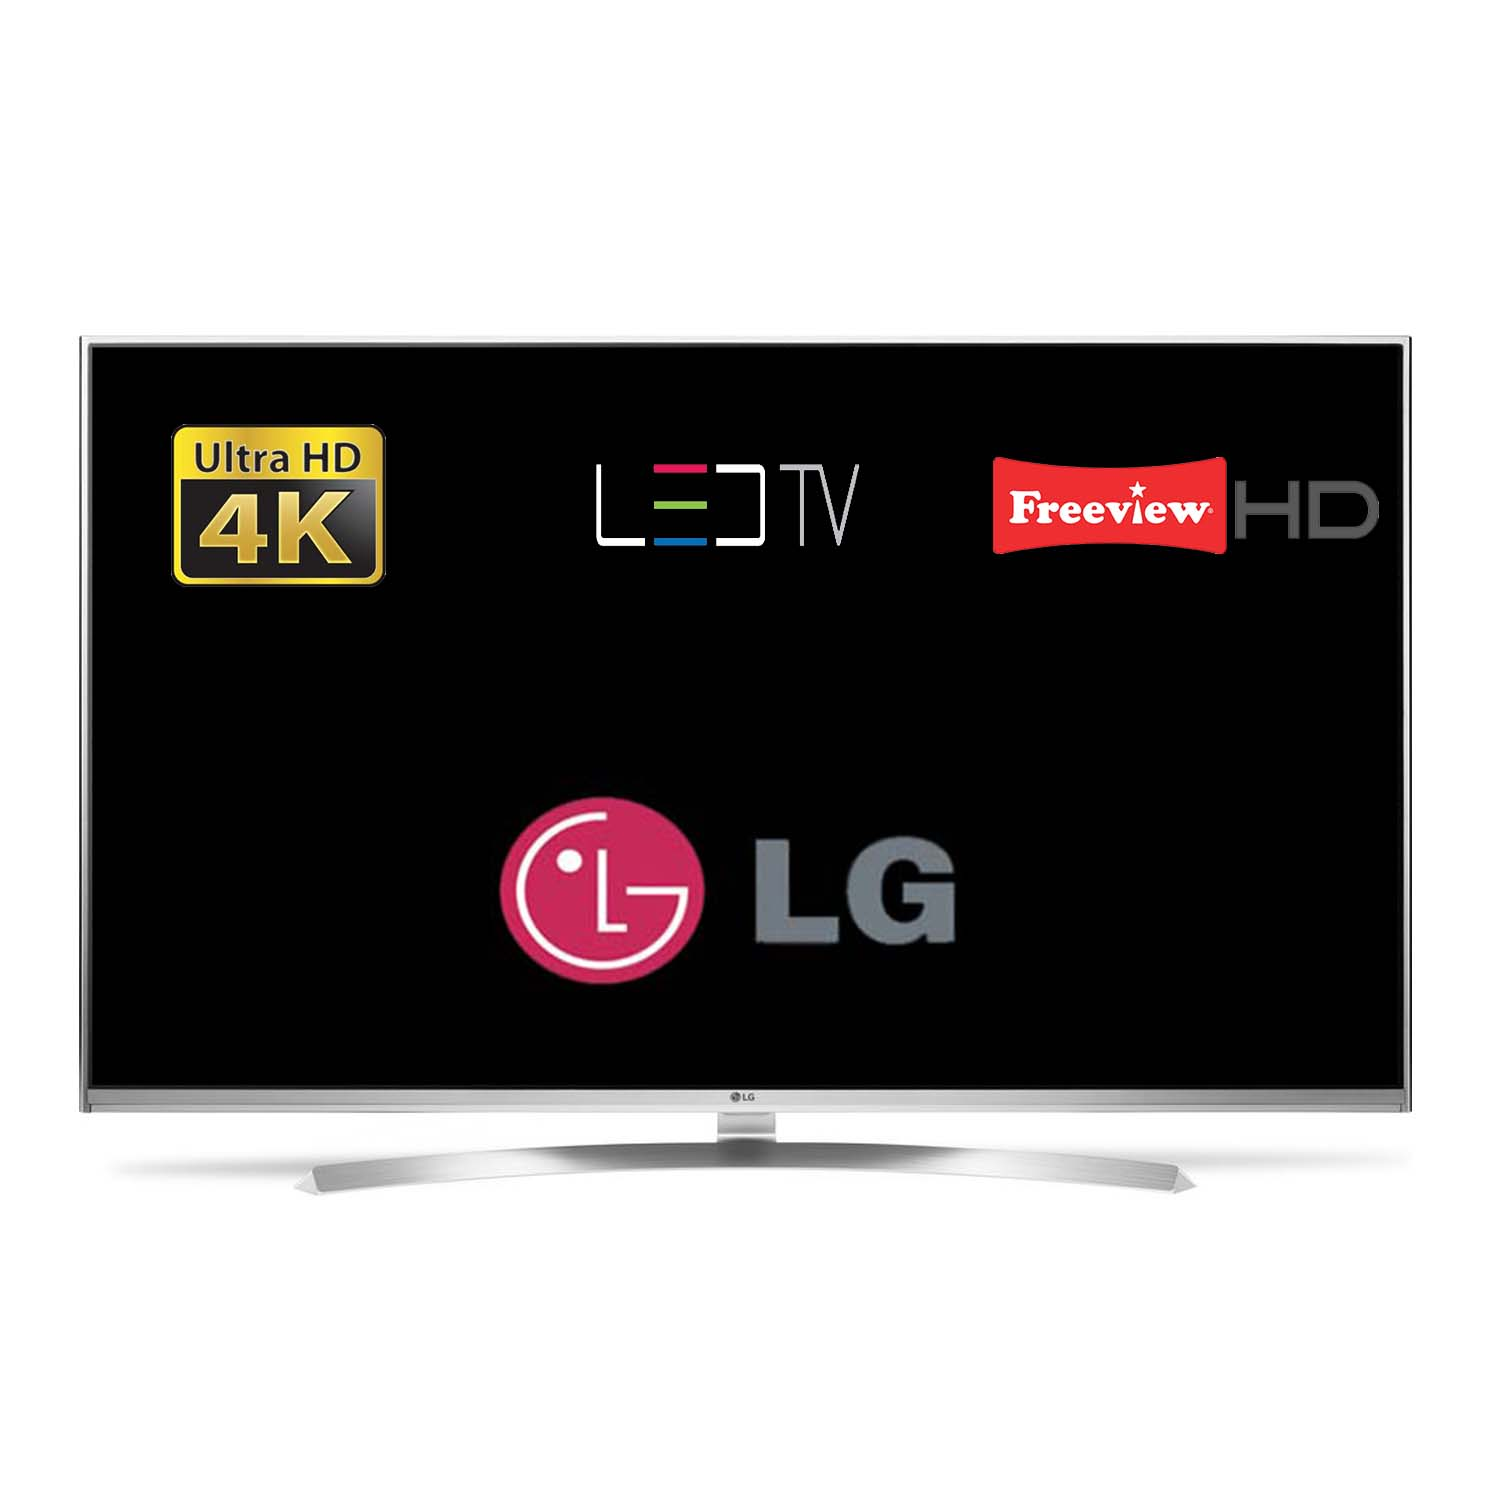 lg 49uh850v 49 smart 3d led tv ultra hd 4k wifi with freeview hd freesat hd ebay. Black Bedroom Furniture Sets. Home Design Ideas